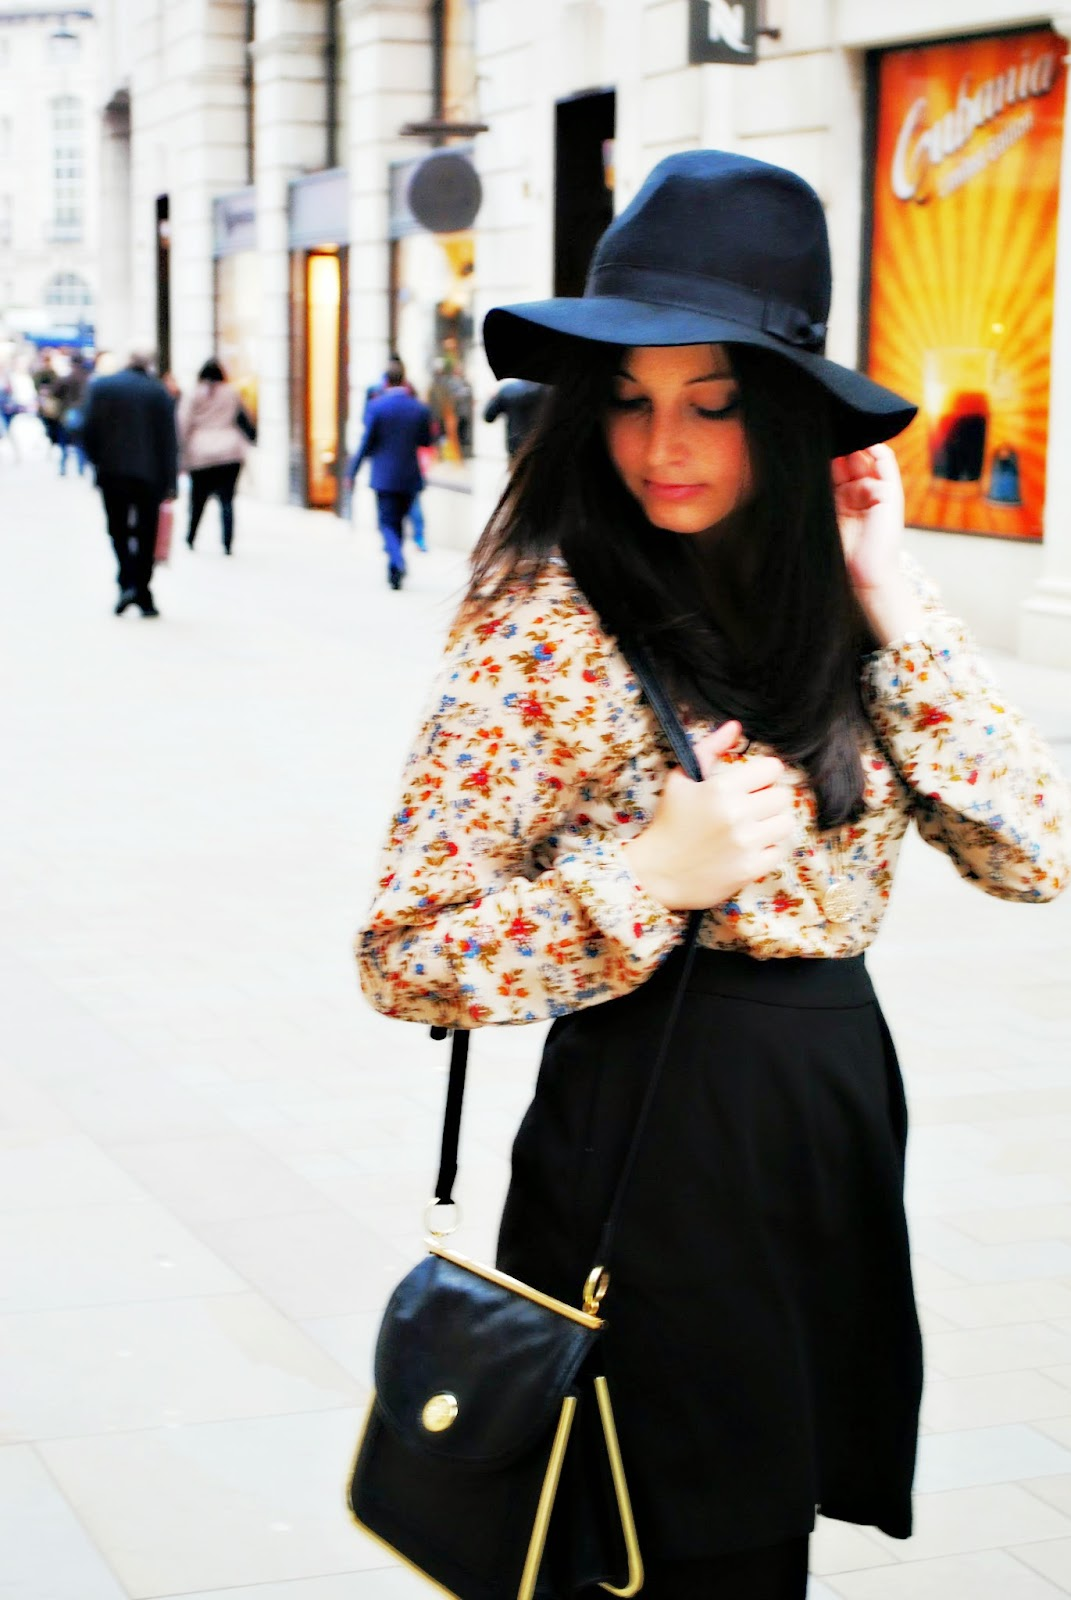 Stradivarius boho vintage blouse fashion shoot at the busy streets of london